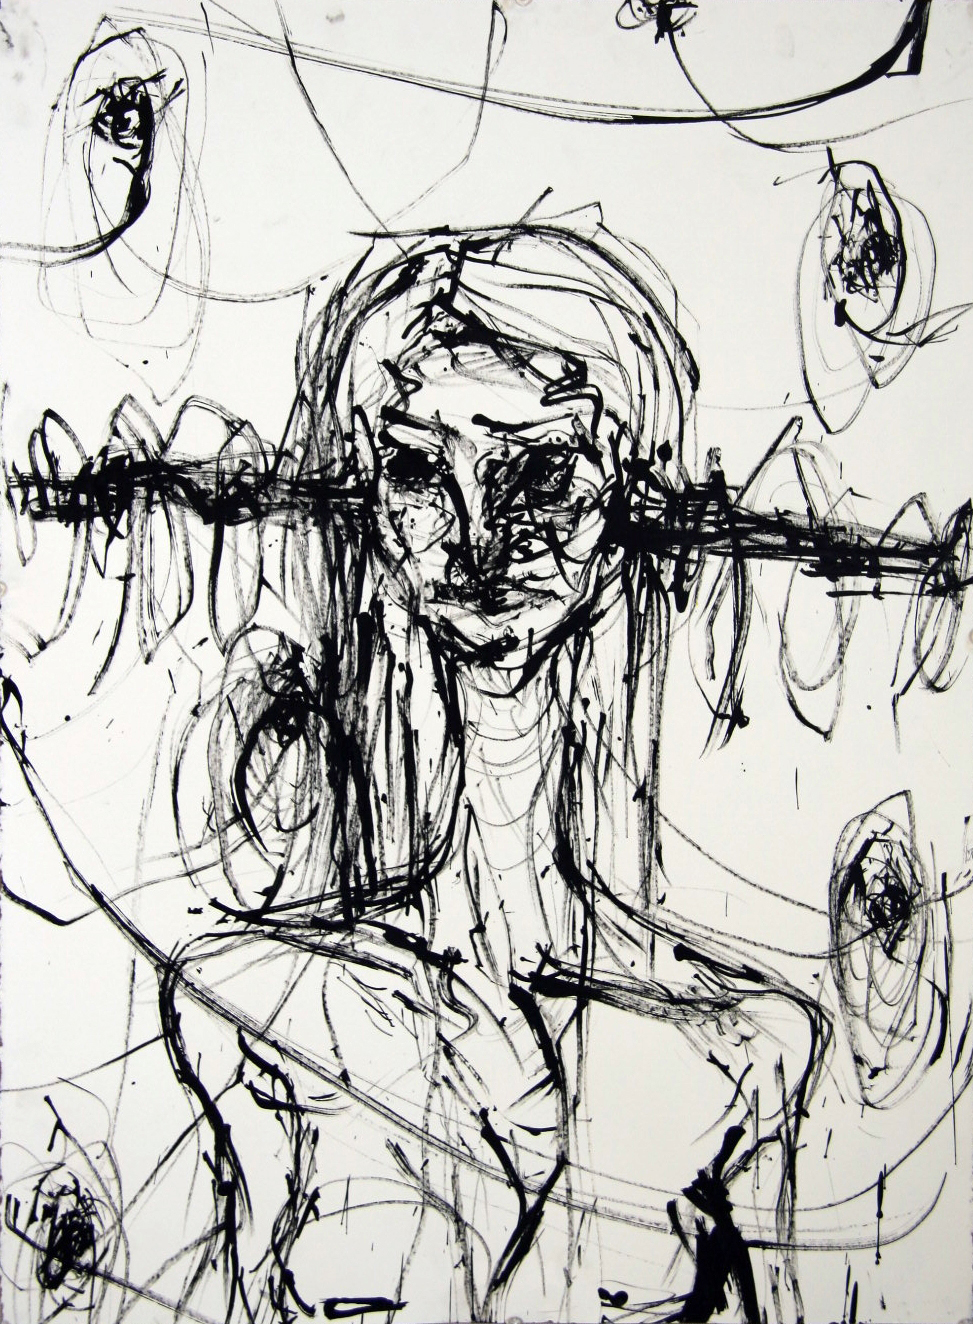 String and Ink 18 x 24 inch  For Sale - $40  2012